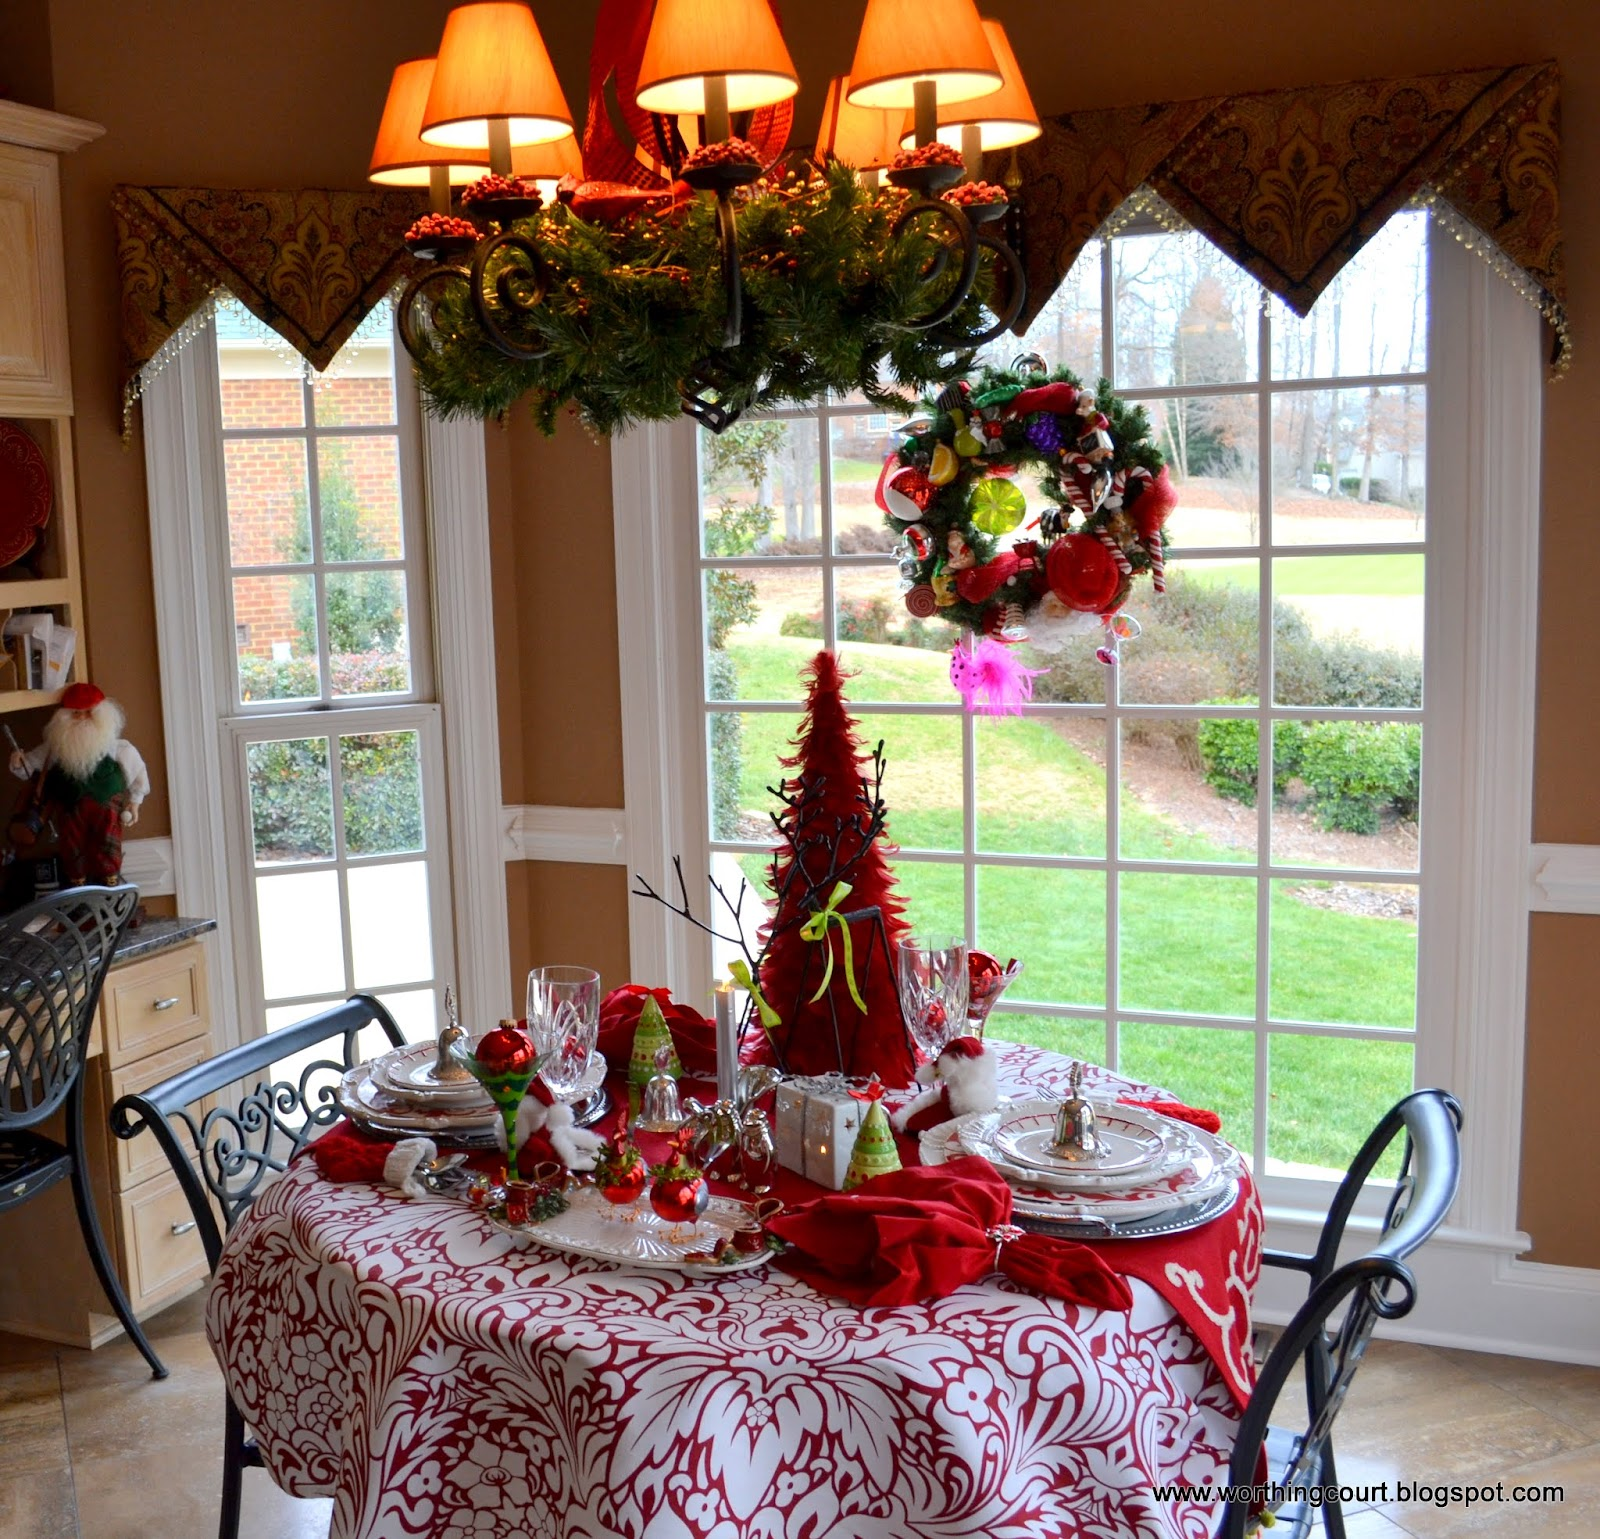 Christmas in Nancy's Dining Room and Kitchen | Worthing Court